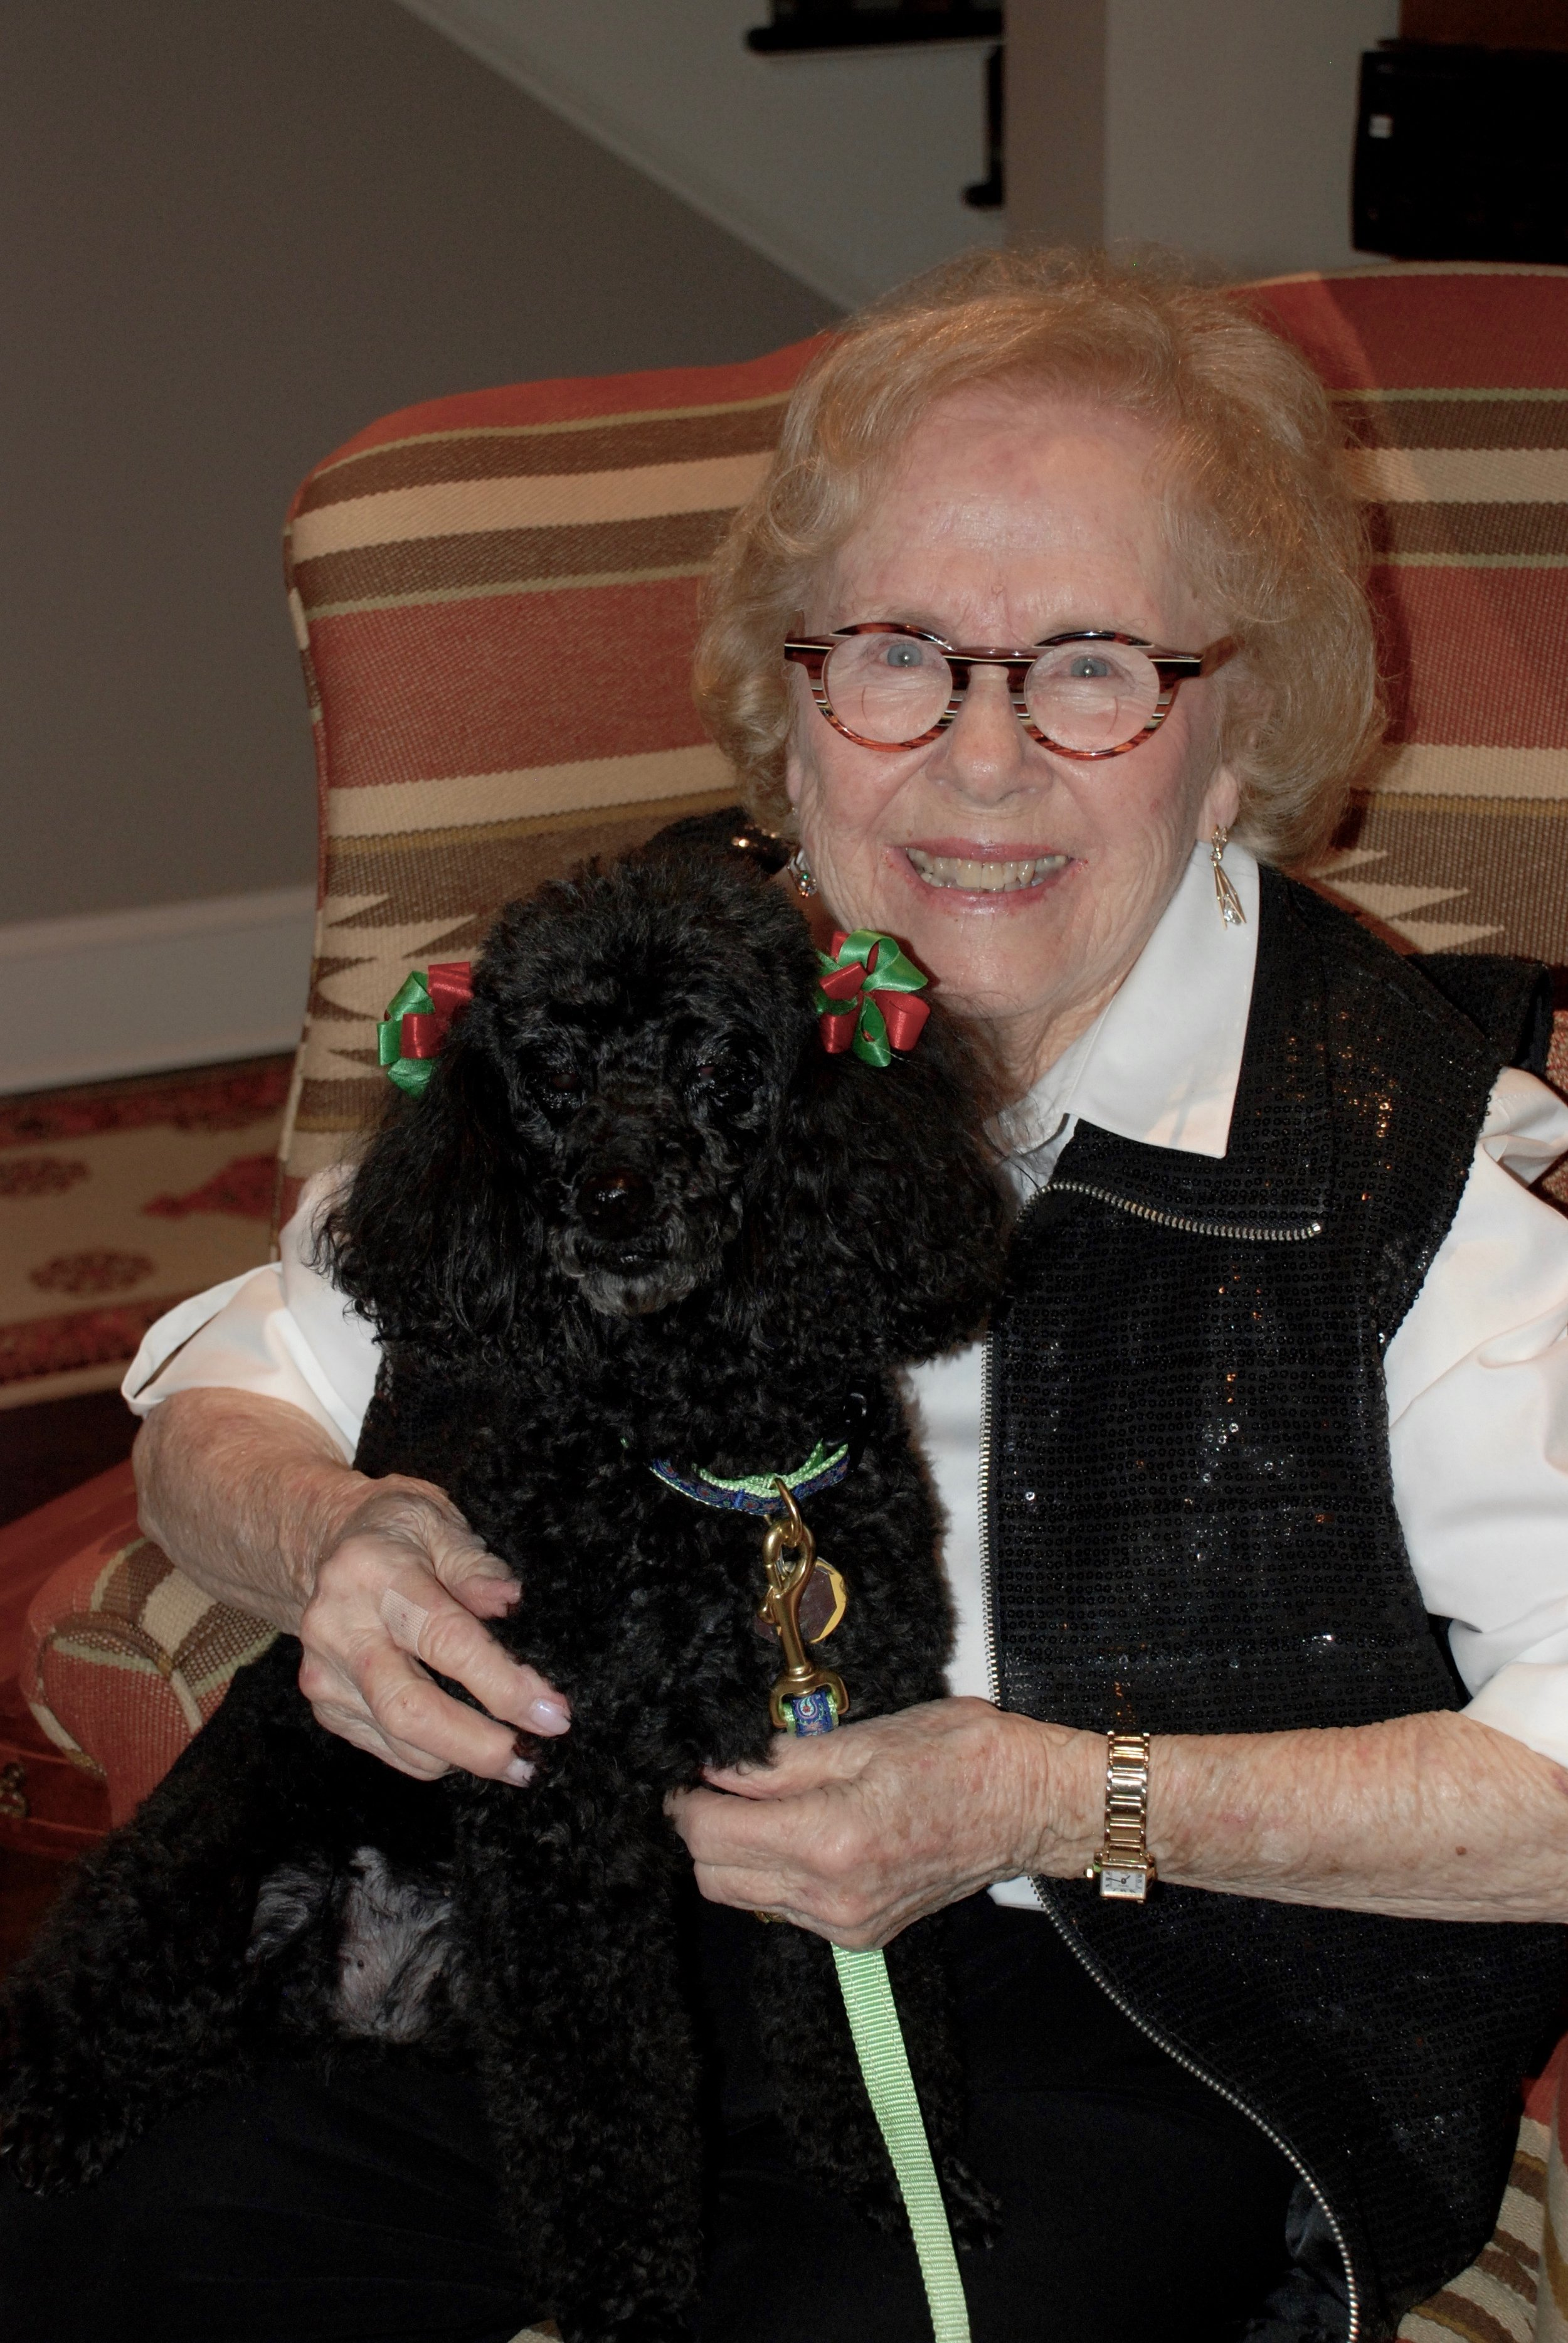 My mother with her dog, Bella. Angel food cake with strawberries and whipped cream is one of her specialties.